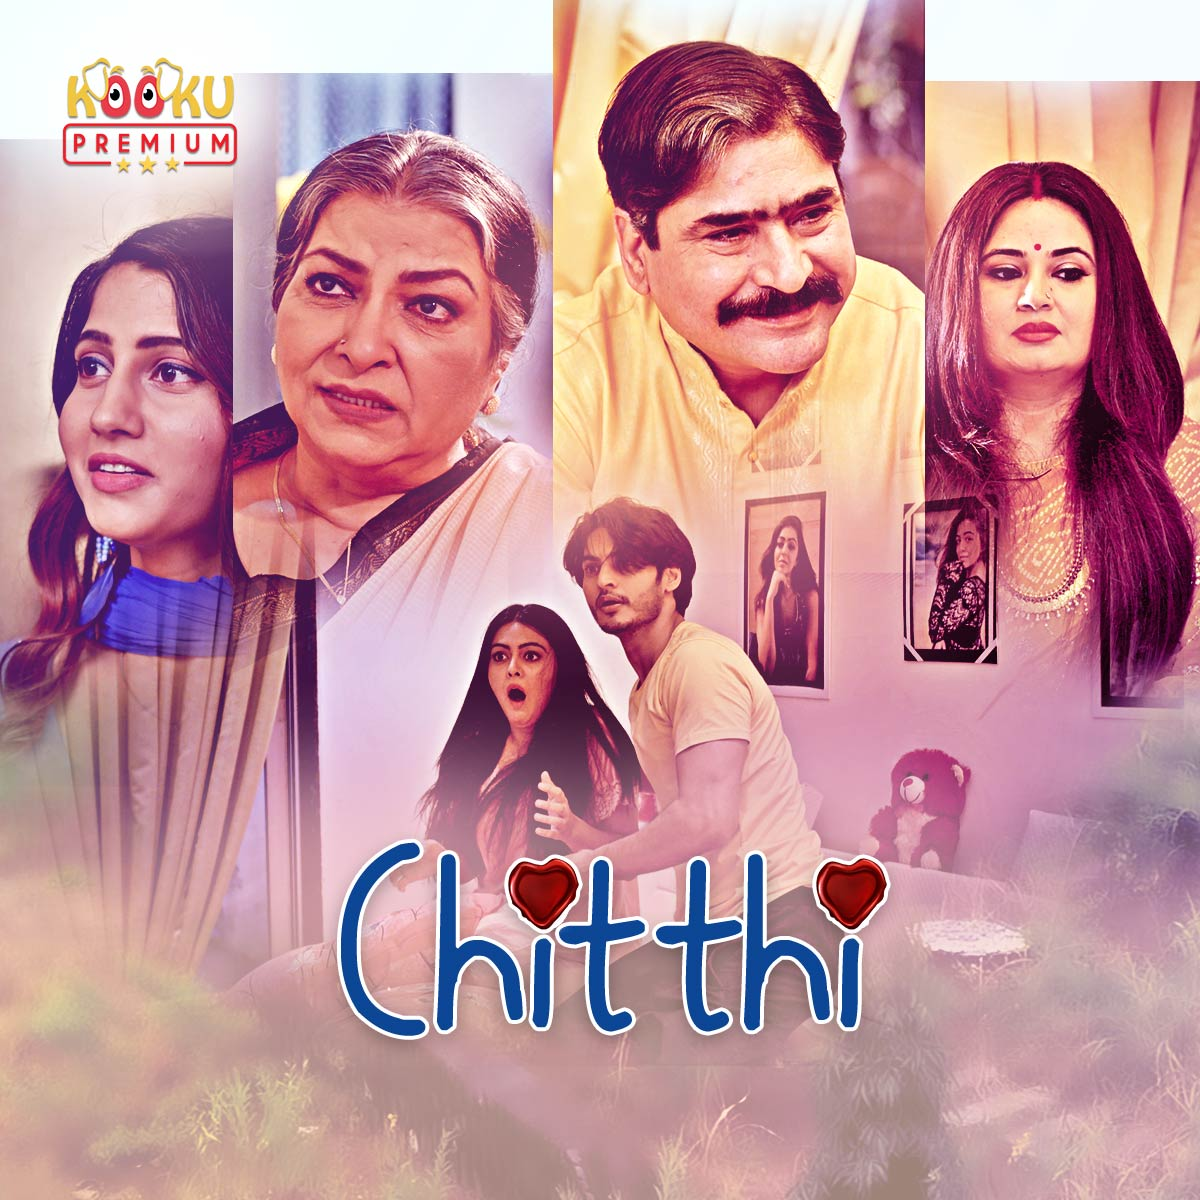 Chitthi 2020 S01 Hindi Kooku App Web Series Official Trailer 1080p HDRip Download